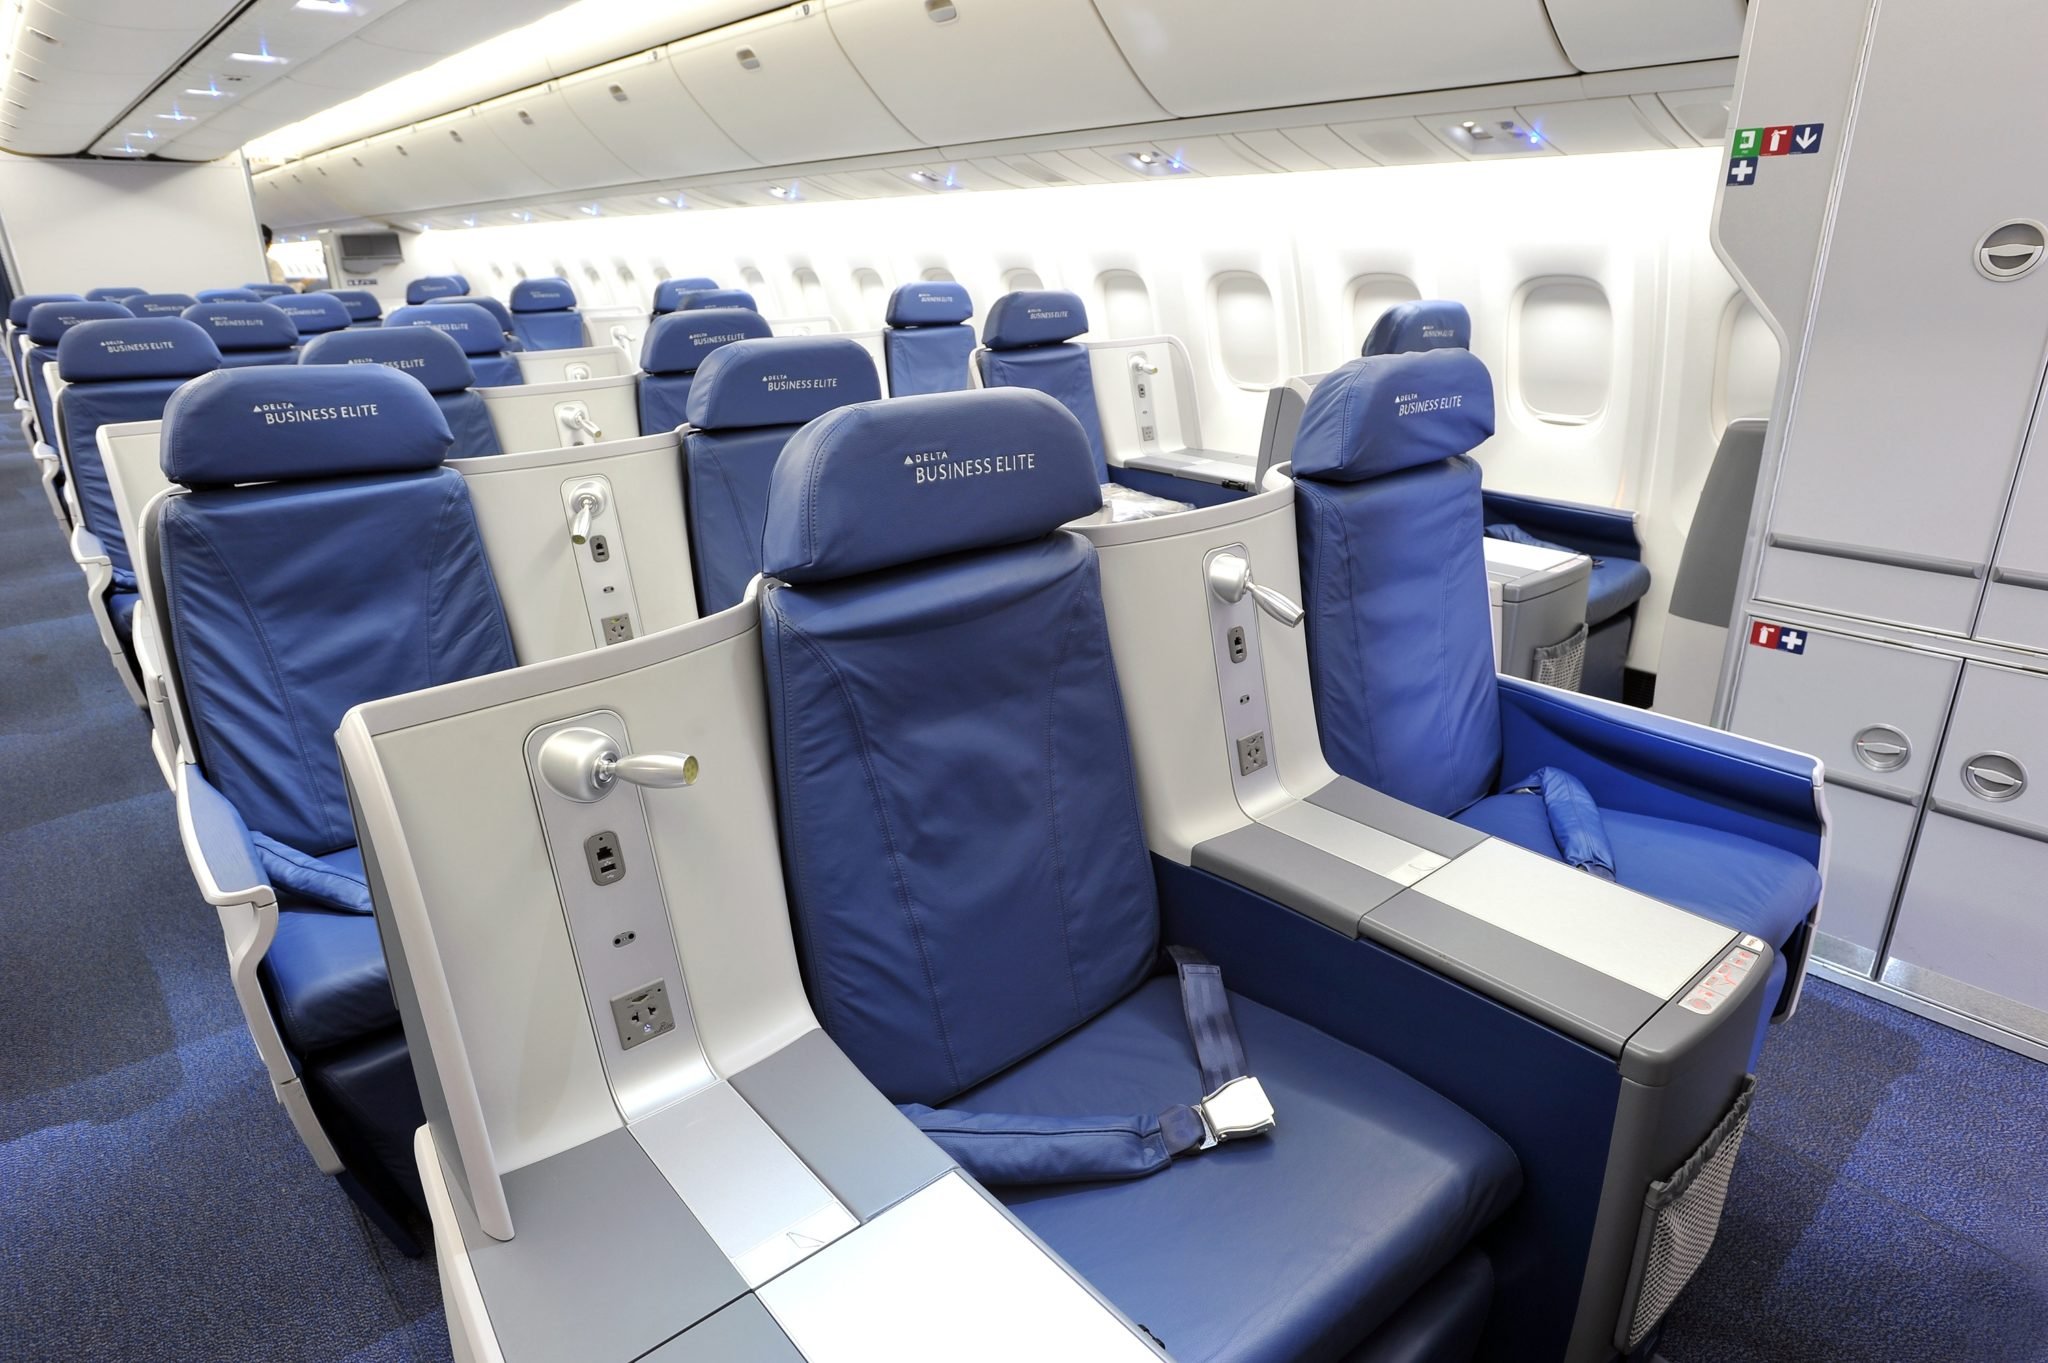 Delta's 767 business class is an early implementation of Thompson's Vantage product. Image: Delta